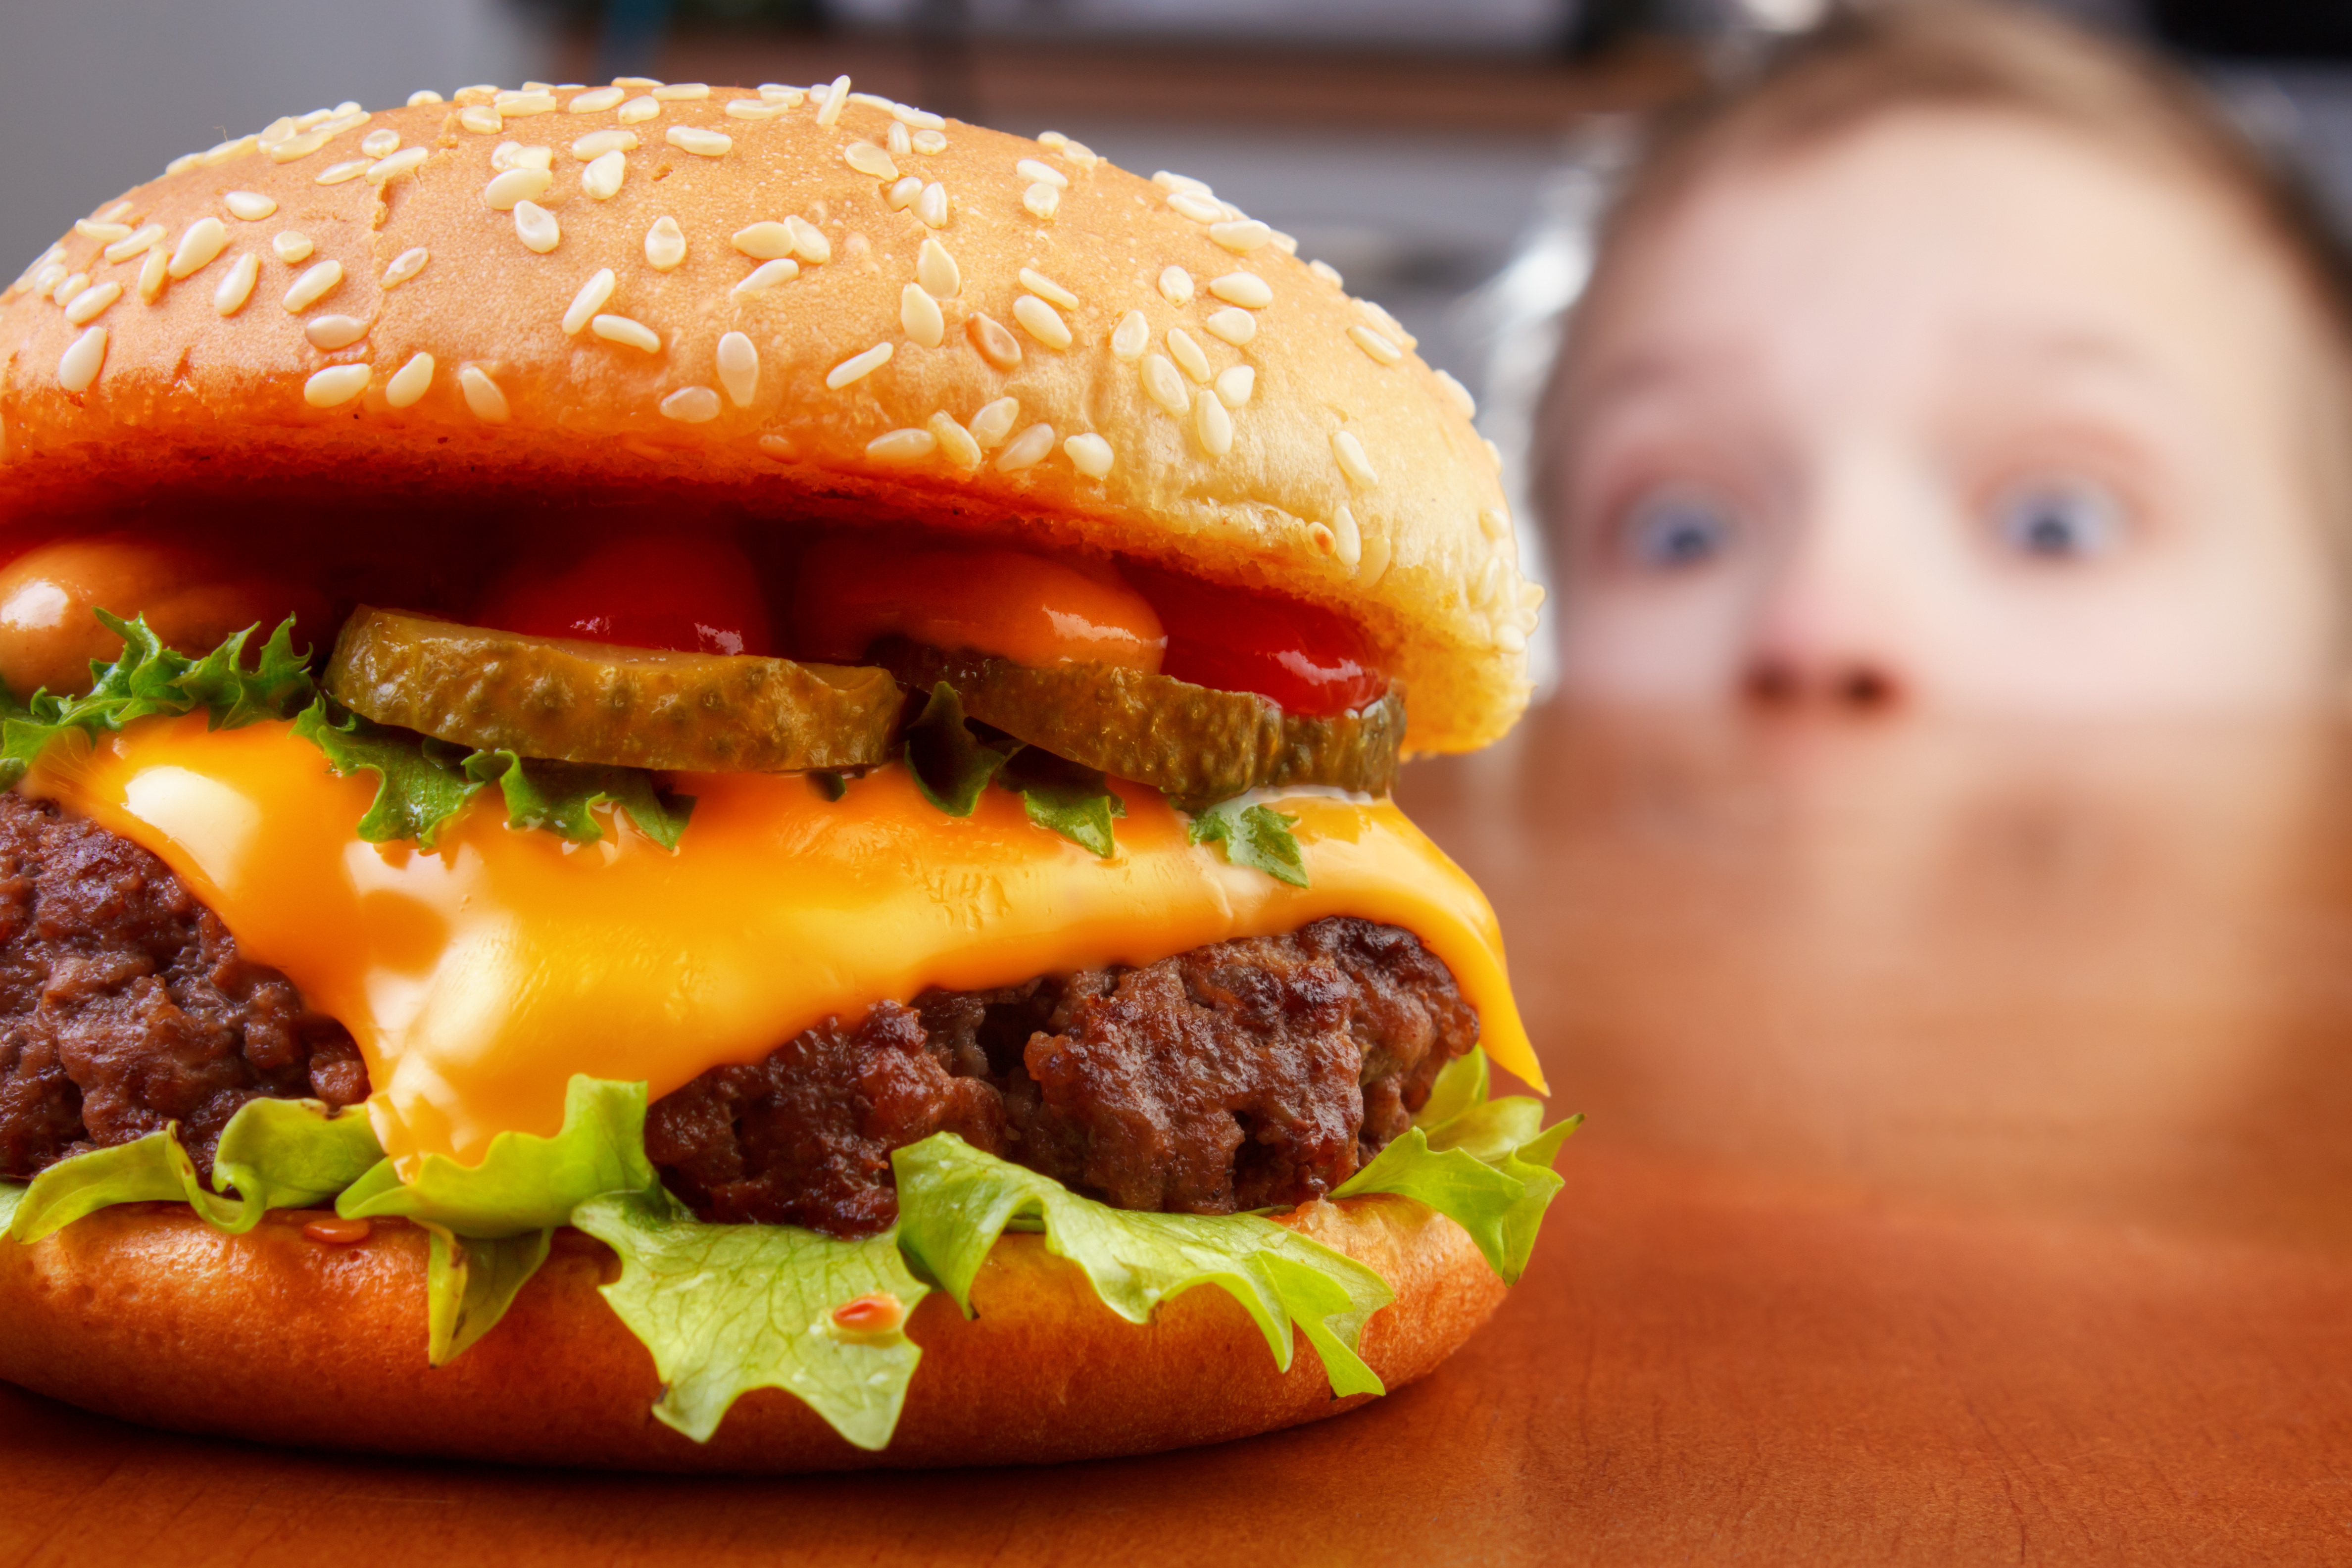 Feeding our Kids Daily Bread in a World of Fast Foods